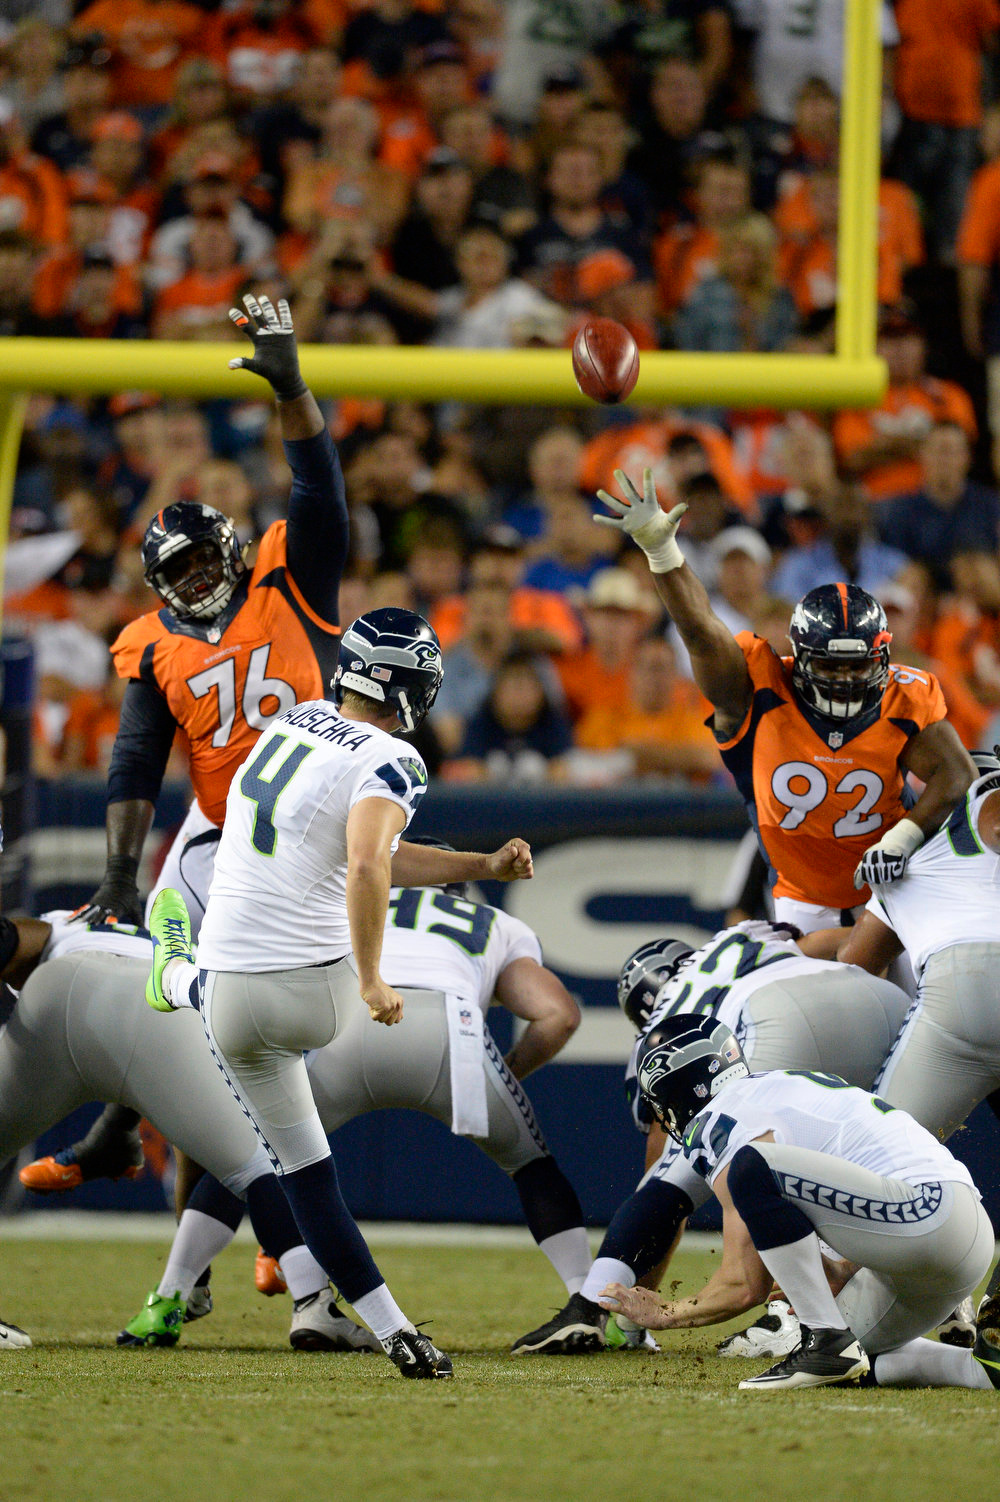 . Seattle Seahawks kicker Steven Hauschka (4) kicks a 41 yard FG to put he Seahawks on top 10-7 during the second quarter agains the Denver Broncos August 7, 2014 at Sports Authority Field at Mile High Stadium.  (Photo by John Leyba/The Denver Post)